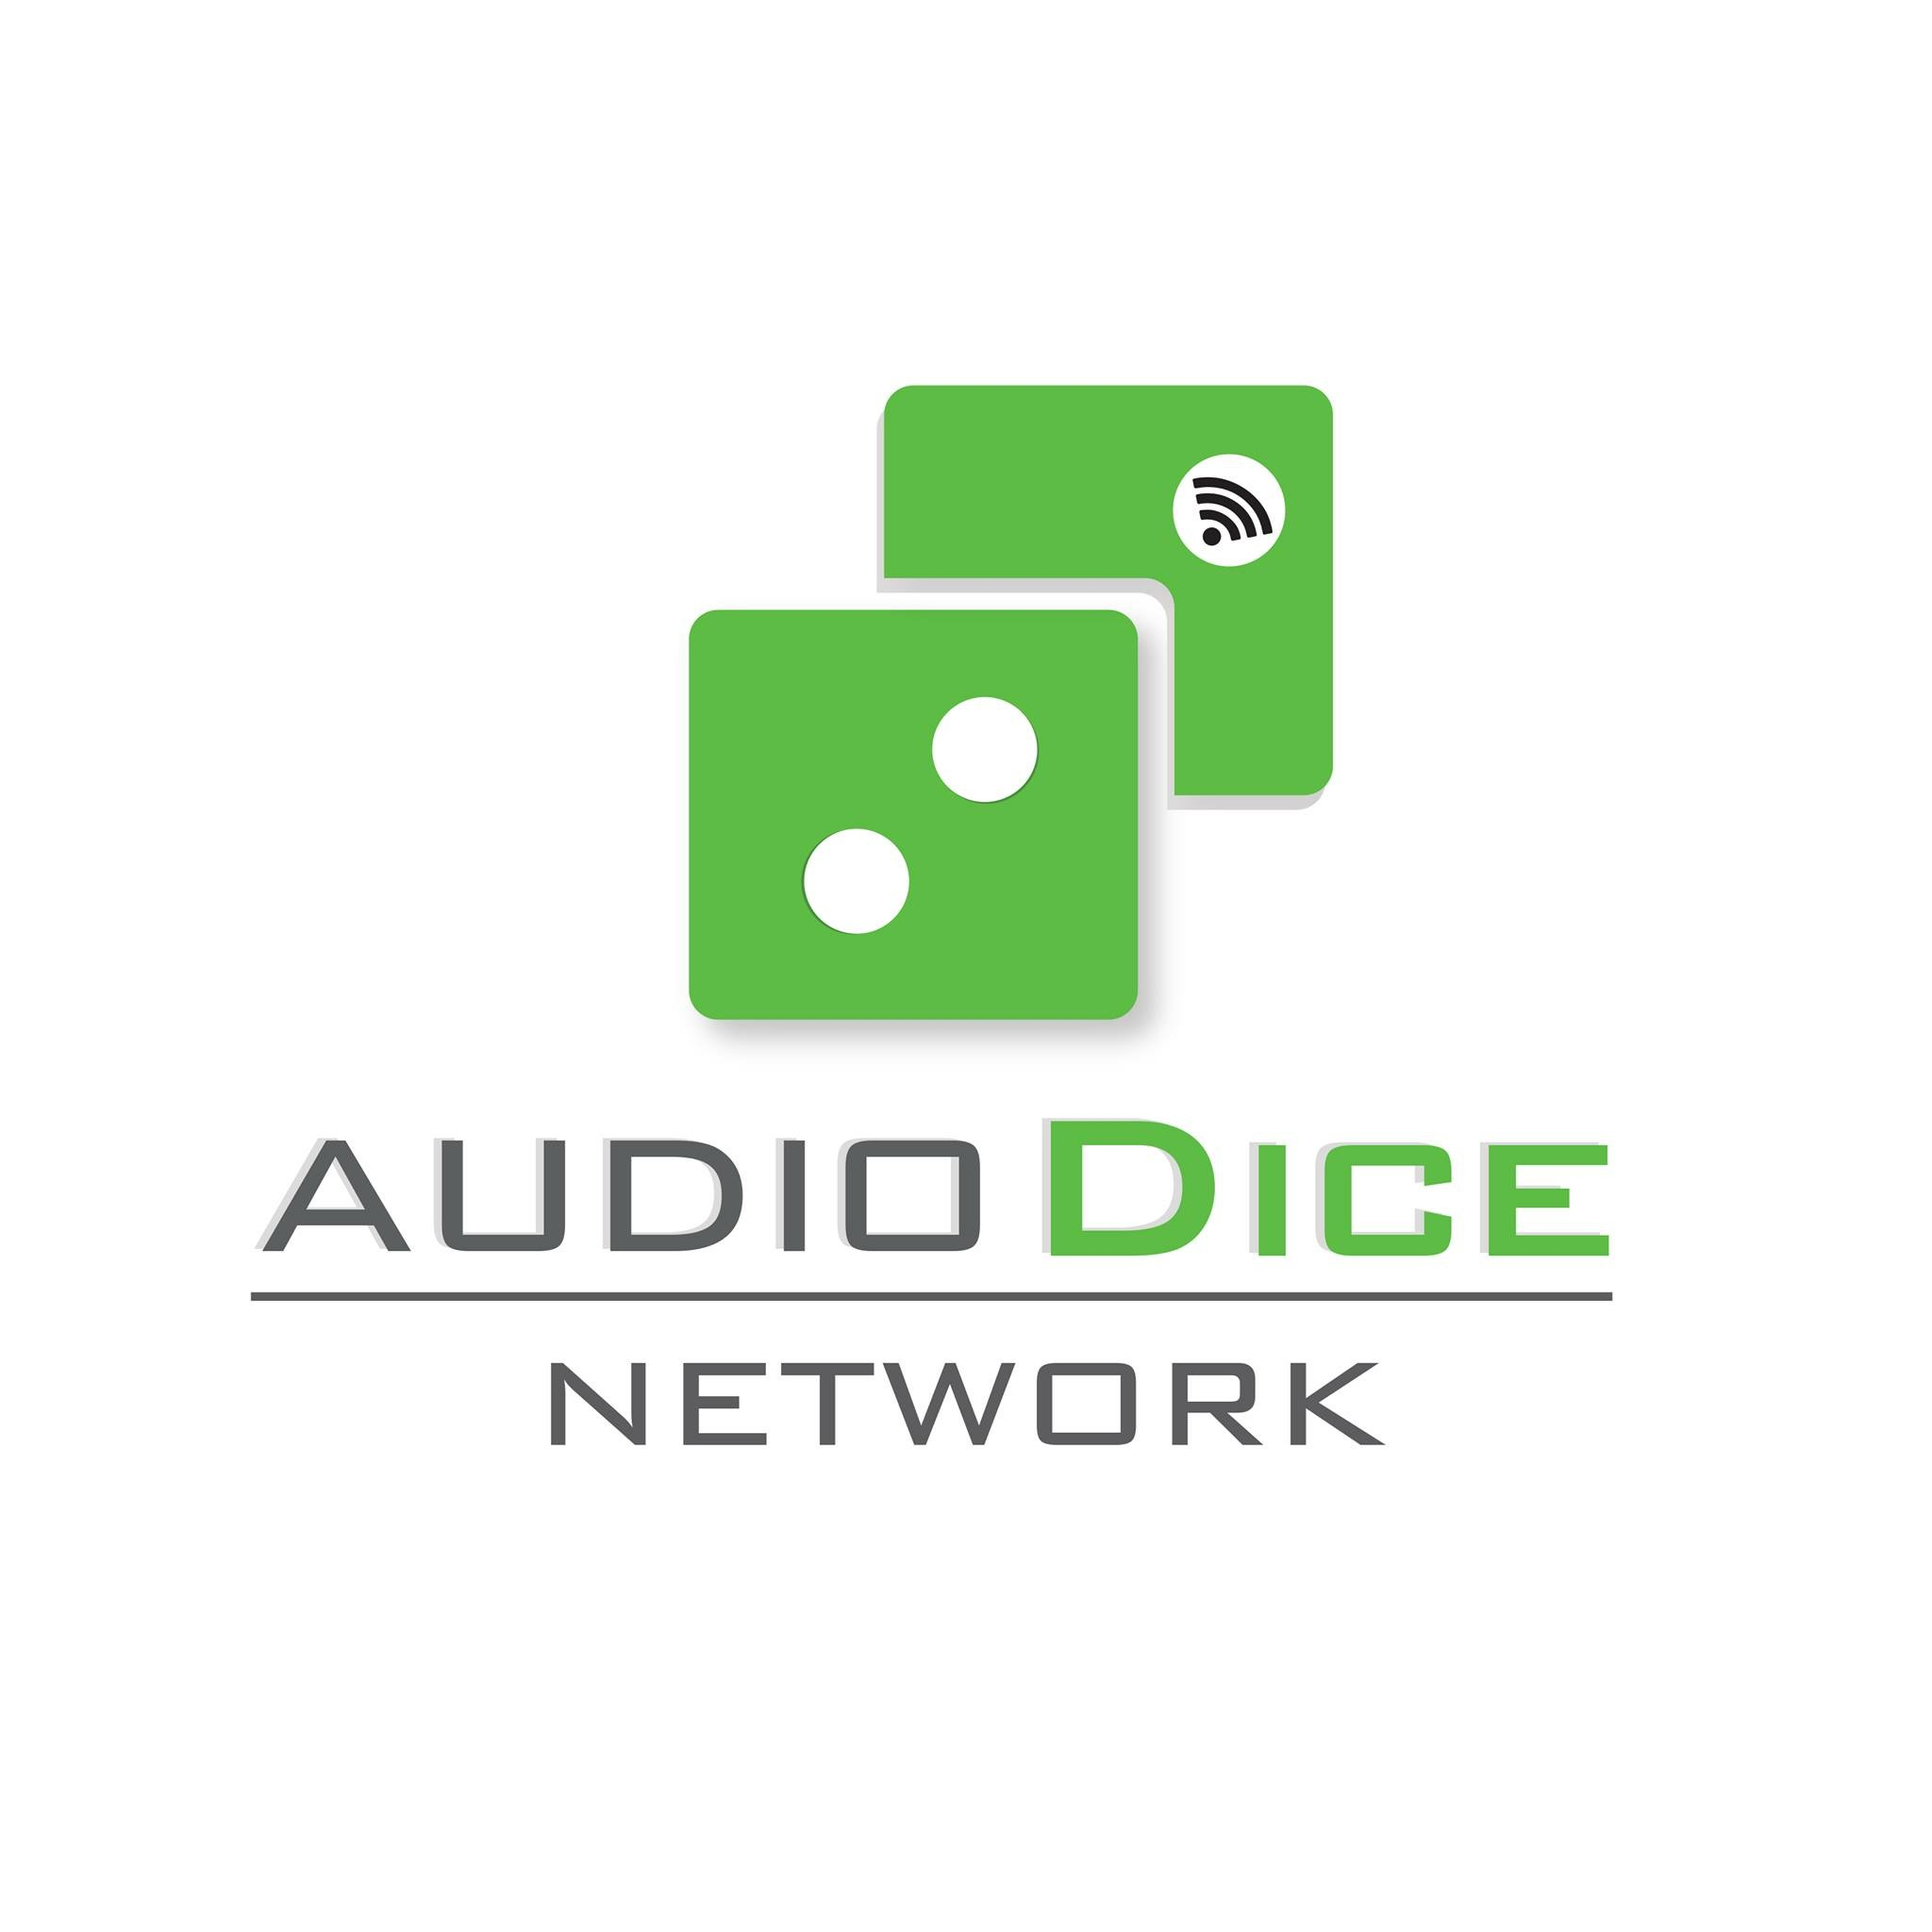 Potencial Millonario an Audio Dice Podcast Network in Spanish (Español)